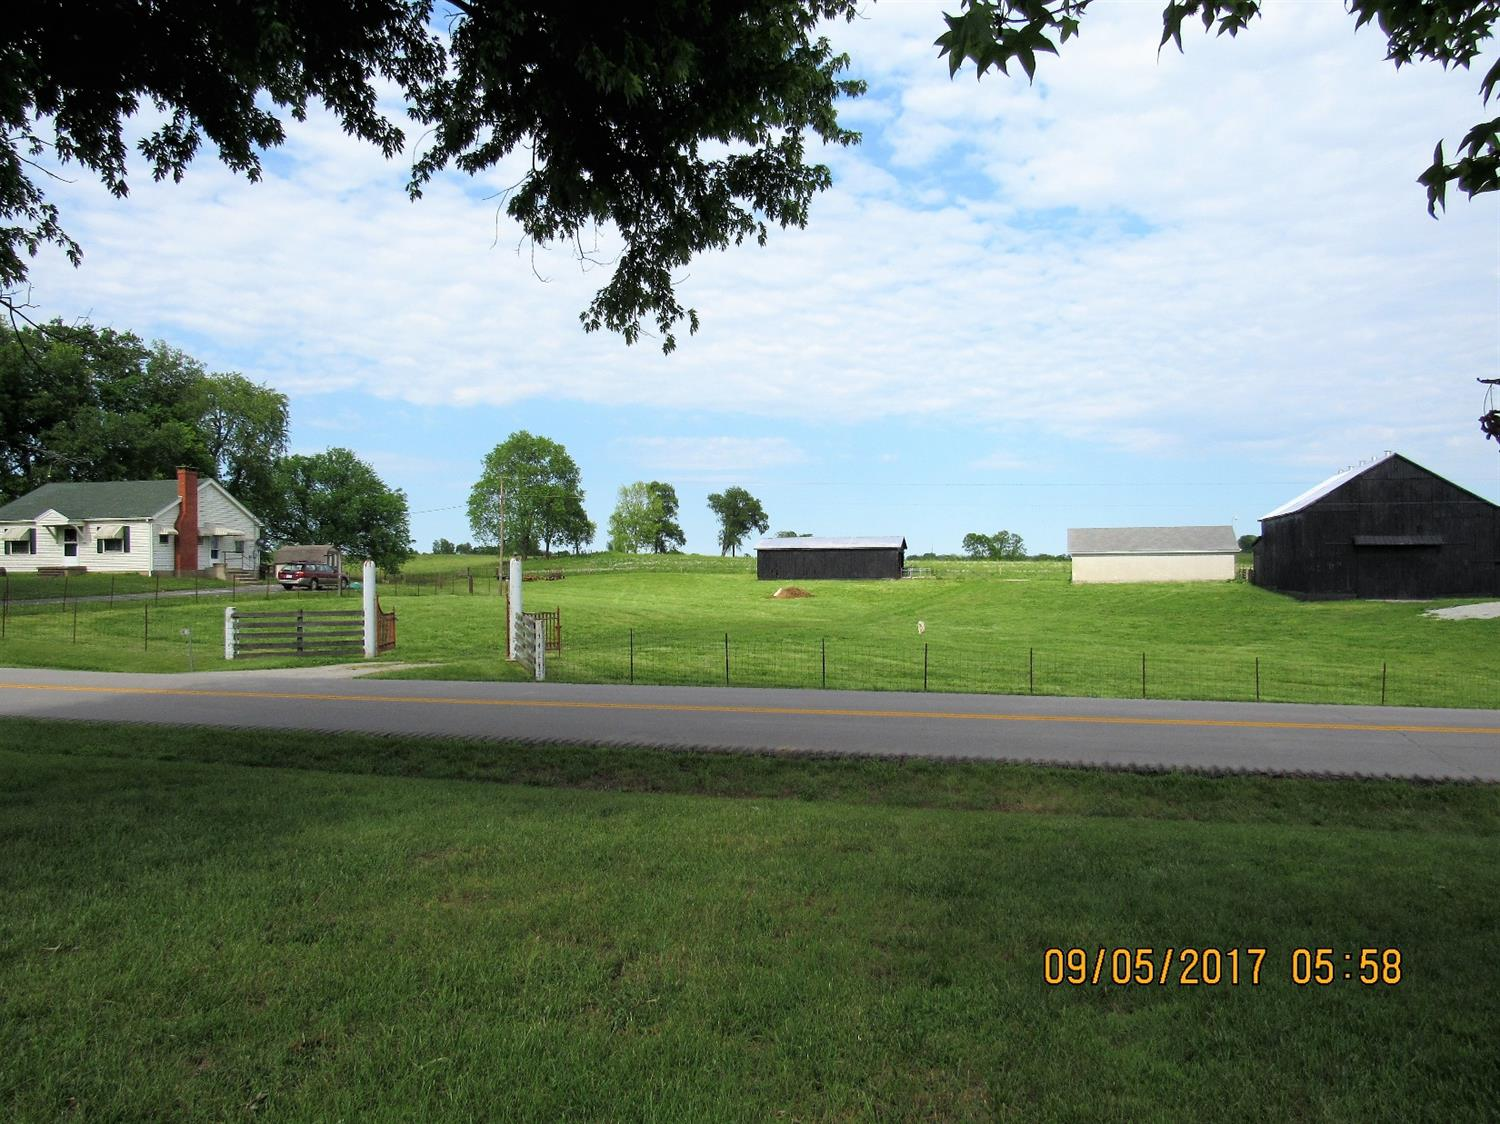 Farm%20-45+%20acres%20,%202%20bd%20tenant%20house%20w%20basement%20,%20barn%20that%20could%20be%20converted%20into%2018%20stall%20horse%20barn%20and%20approximately%20.3%20mile%20of%20road%20frontage.%20Beautiful%20building%20sites,%20utilities%20includes%20natural%20gas,%20city%20water%20&%20Elec.-%202%20wells,%20block%20shop,%20hay%20%20and%20run-in%20shed.%2017%20acres%20of%20Alfalfa%20Orchard%20Grass%20%20+%20approx27%20acres%20of%20pasture%20with%20shade%20trees-Good%20Fencing-%20Several%20In%20family%20conveyances%20per%20P%20&%20Z.%20Frankfort%20address%20but%20Woodford%20County%20Land.%20Property%20is%20being%20sold%20to%20Settle%20an%20Estate.